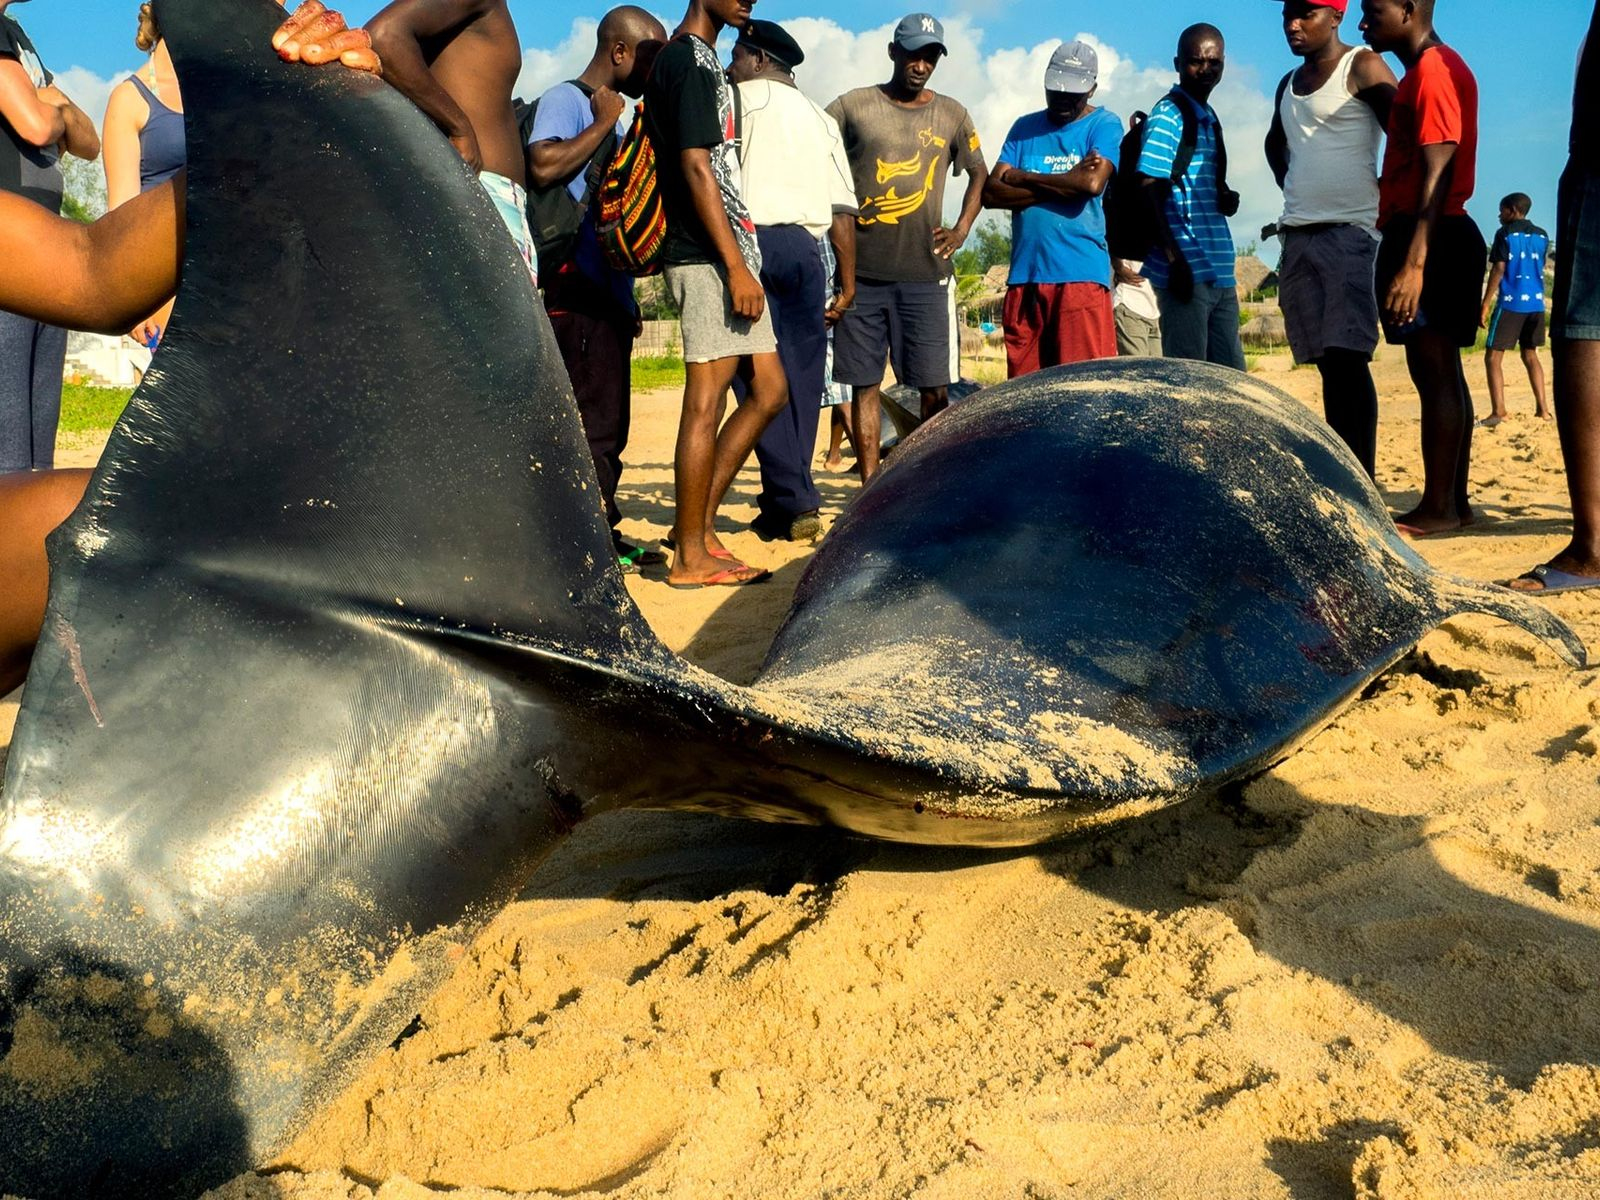 People harvest the meat of beached whales in Praia do Tofo, Mozambique.